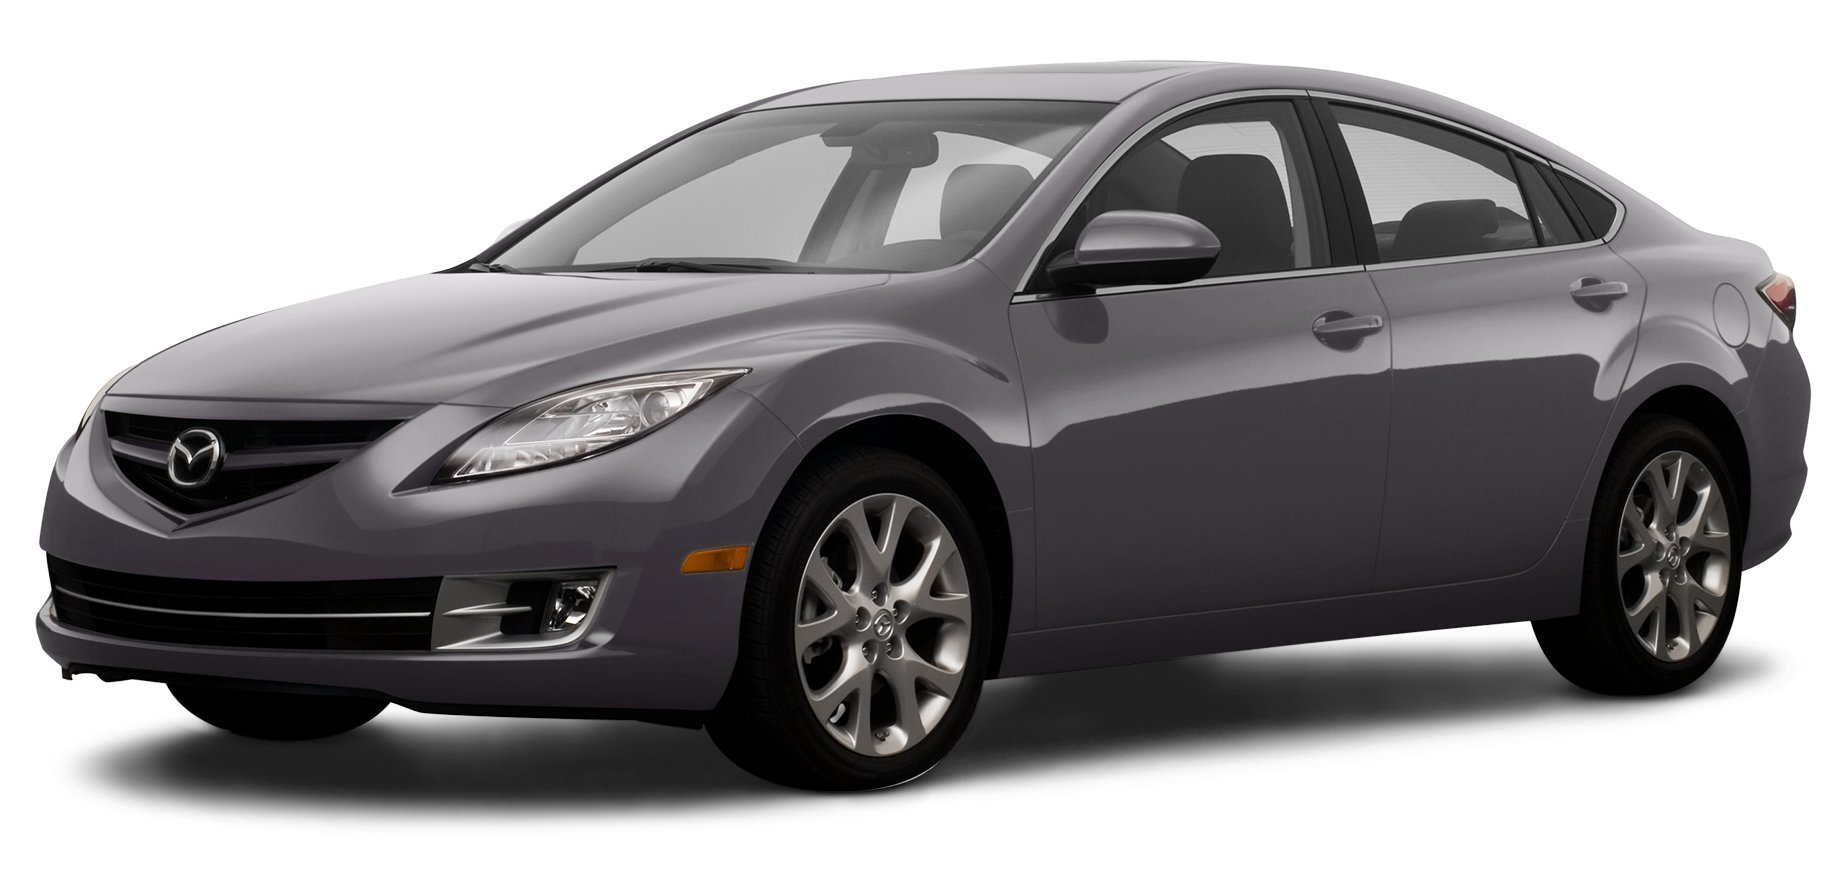 Amazon Com  2009 Mazda 6 Reviews  Images  And Specs  Vehicles